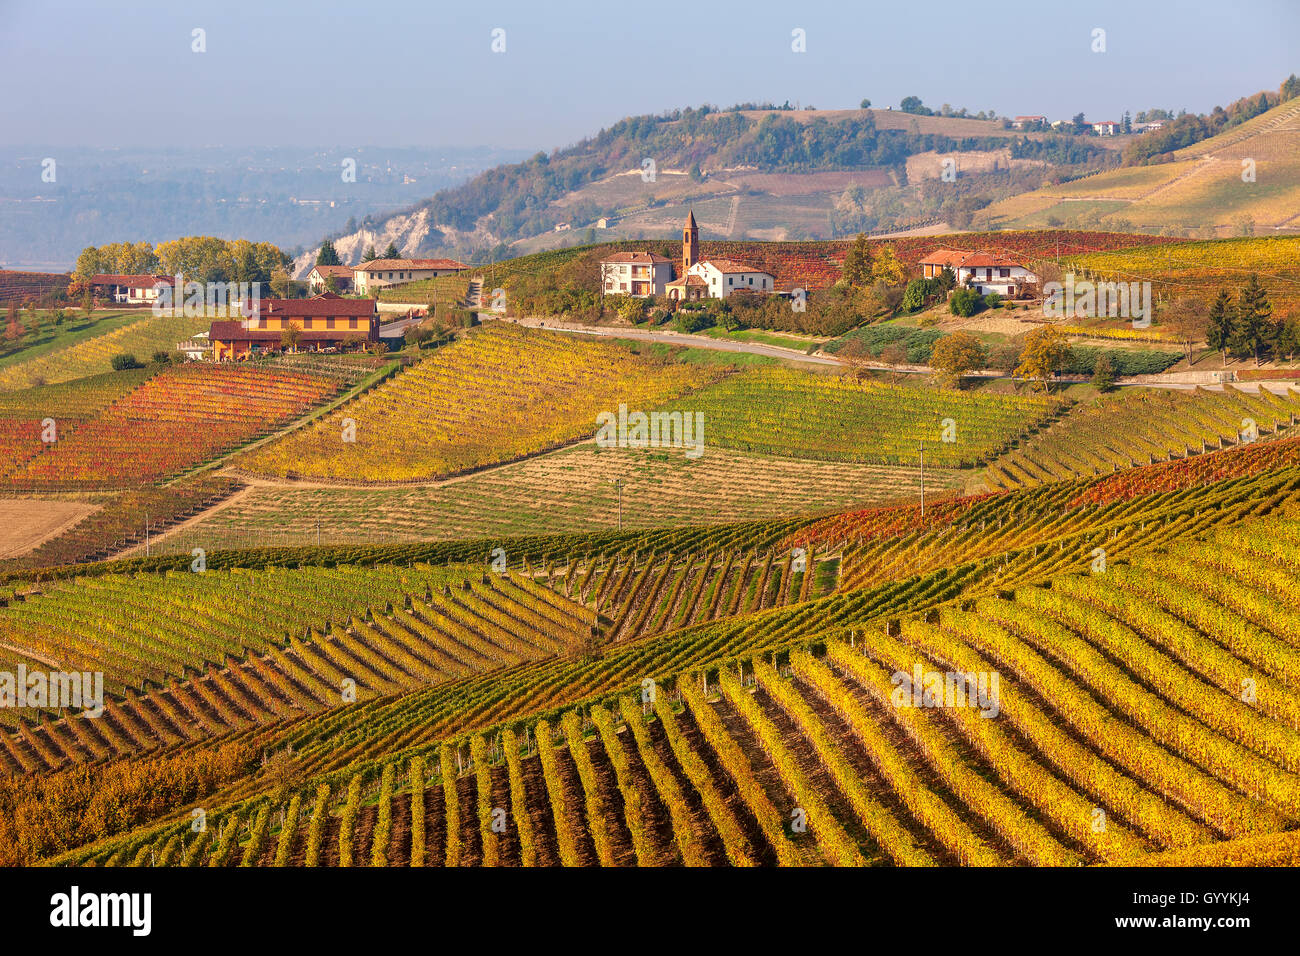 Rows of vineyards on hills of Piedmont, Italy in autumn. - Stock Image